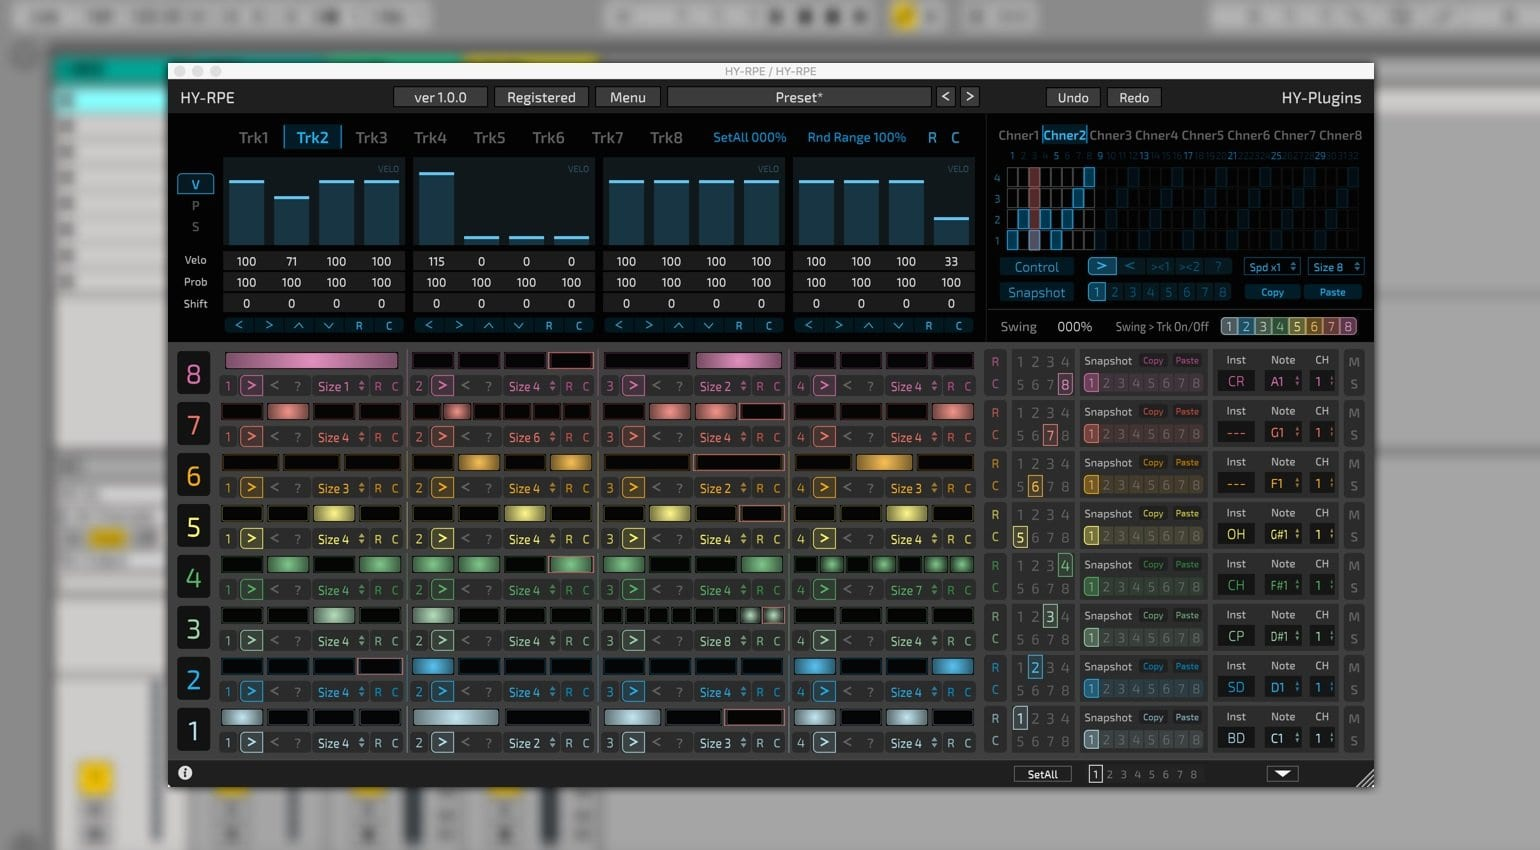 Trigger synths and effects with the new HY-RPE step